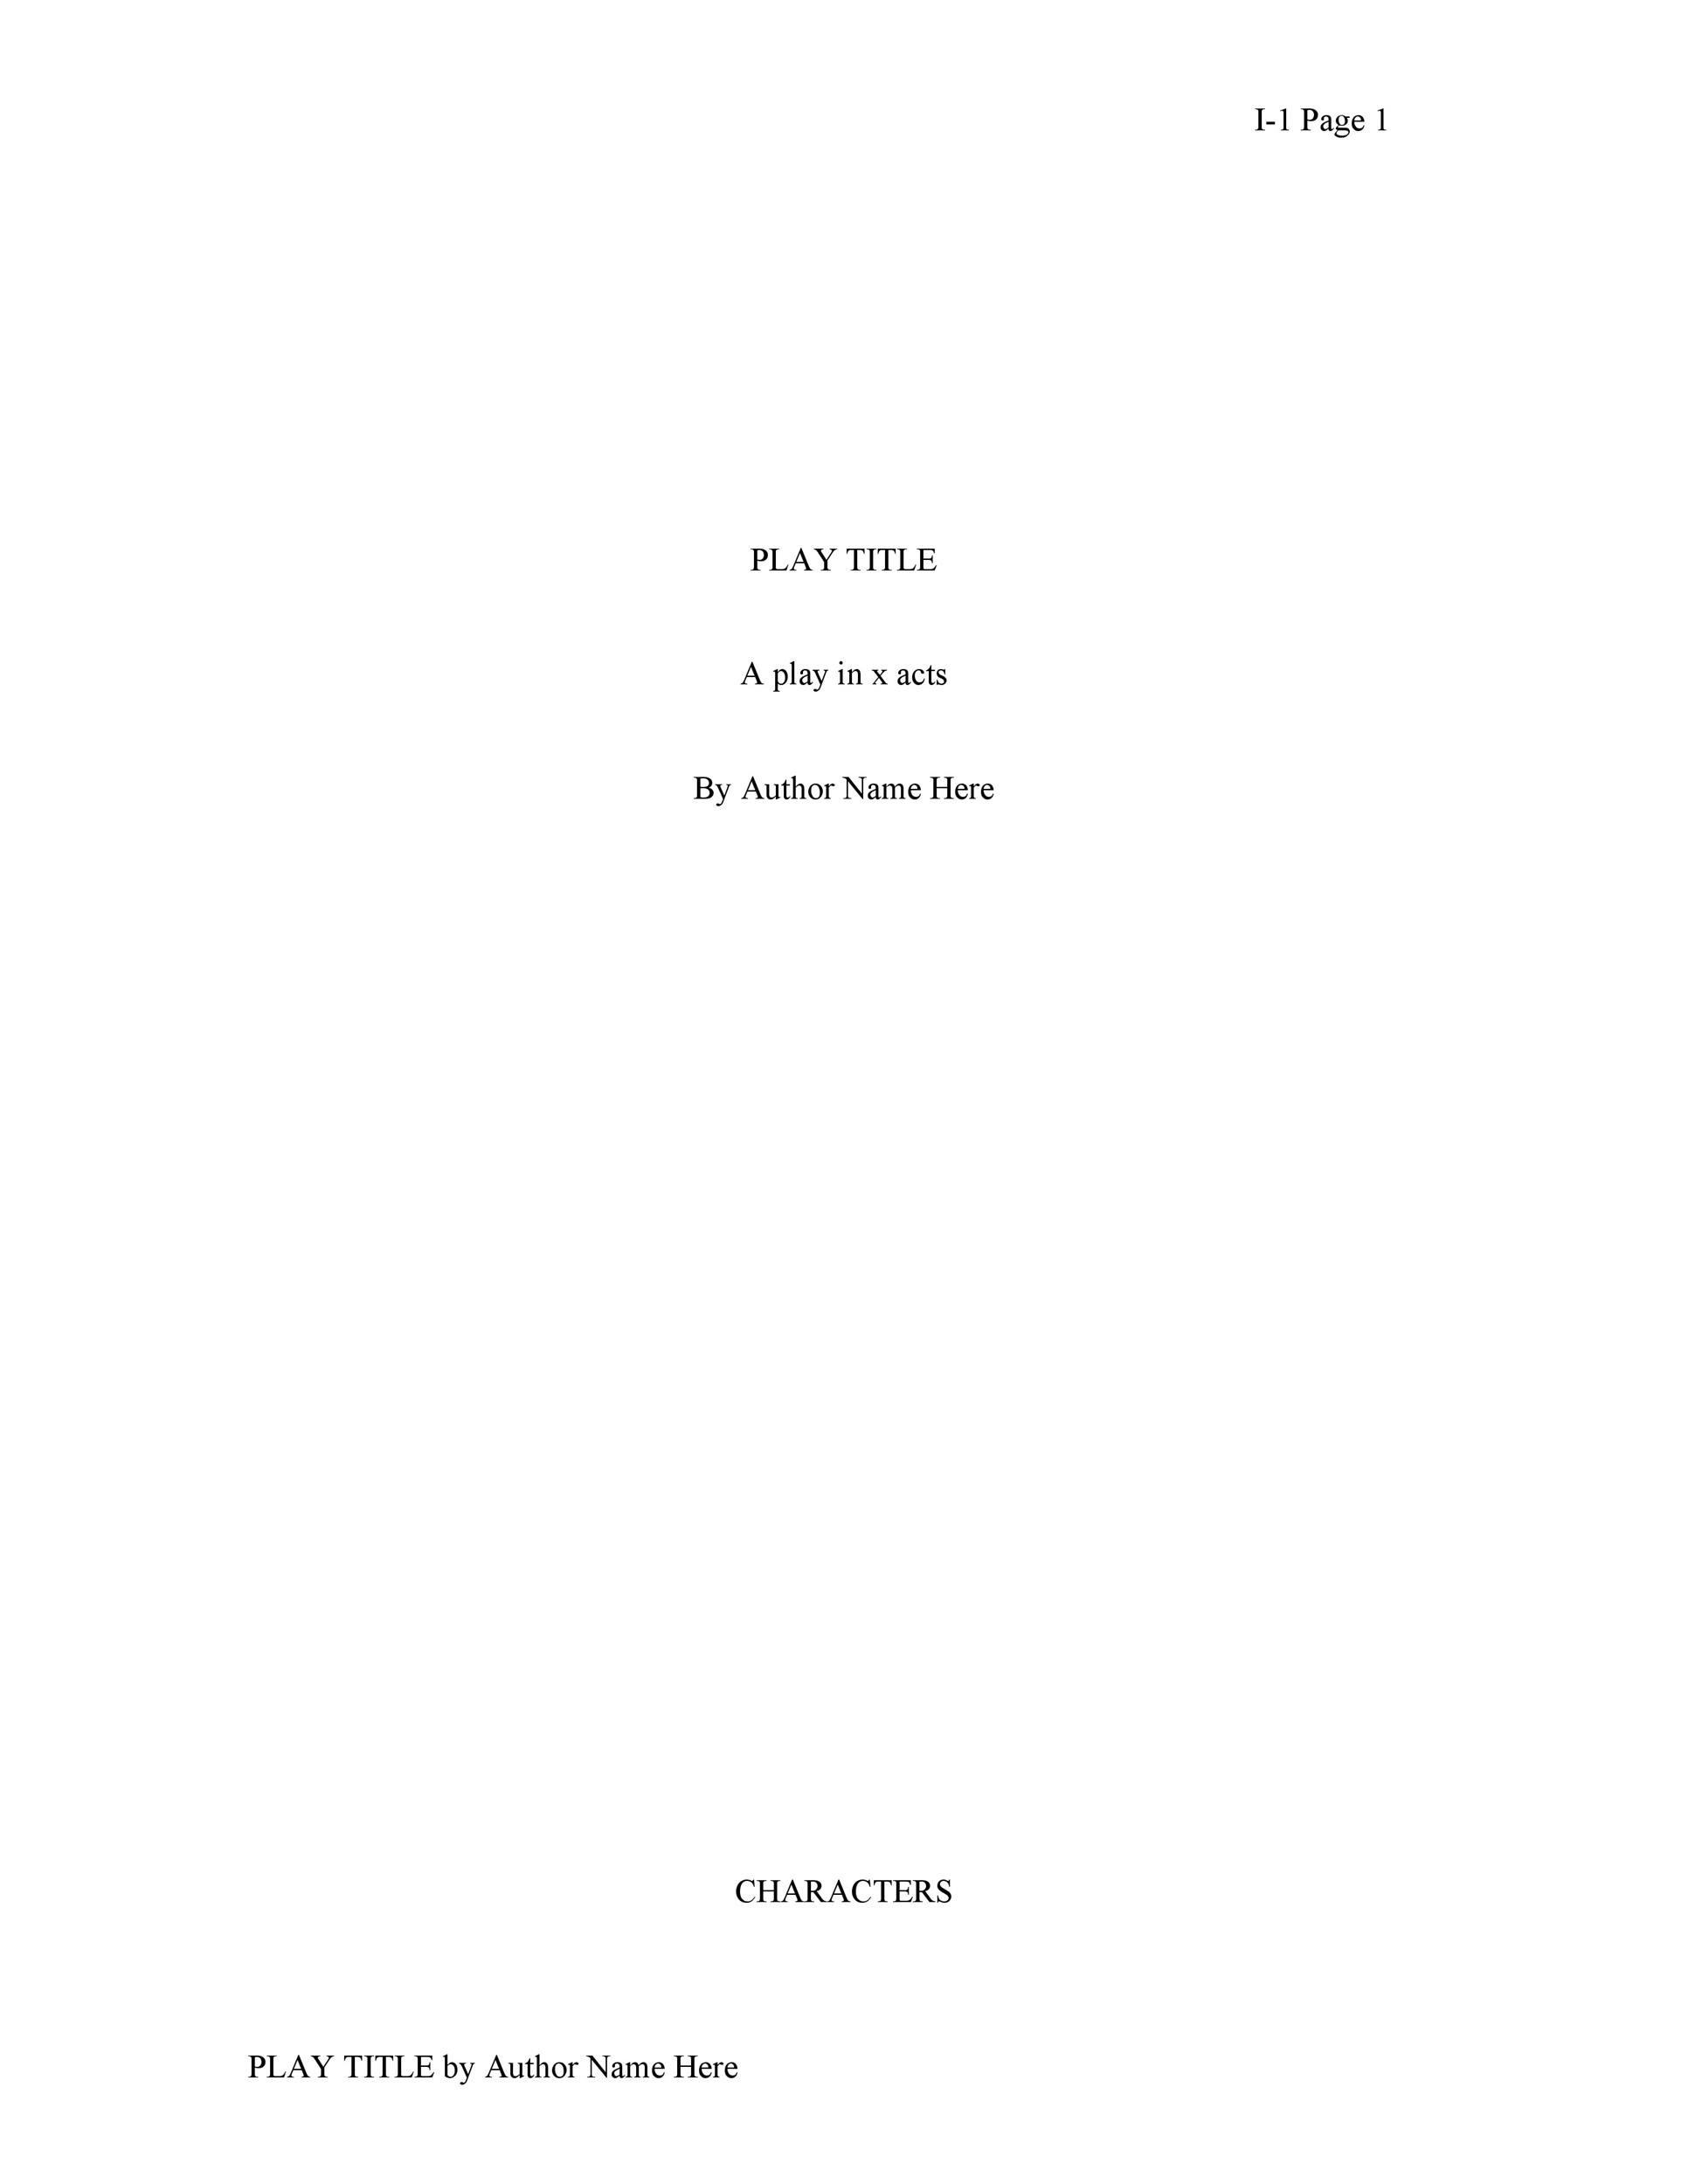 Free Screenplay Template 26